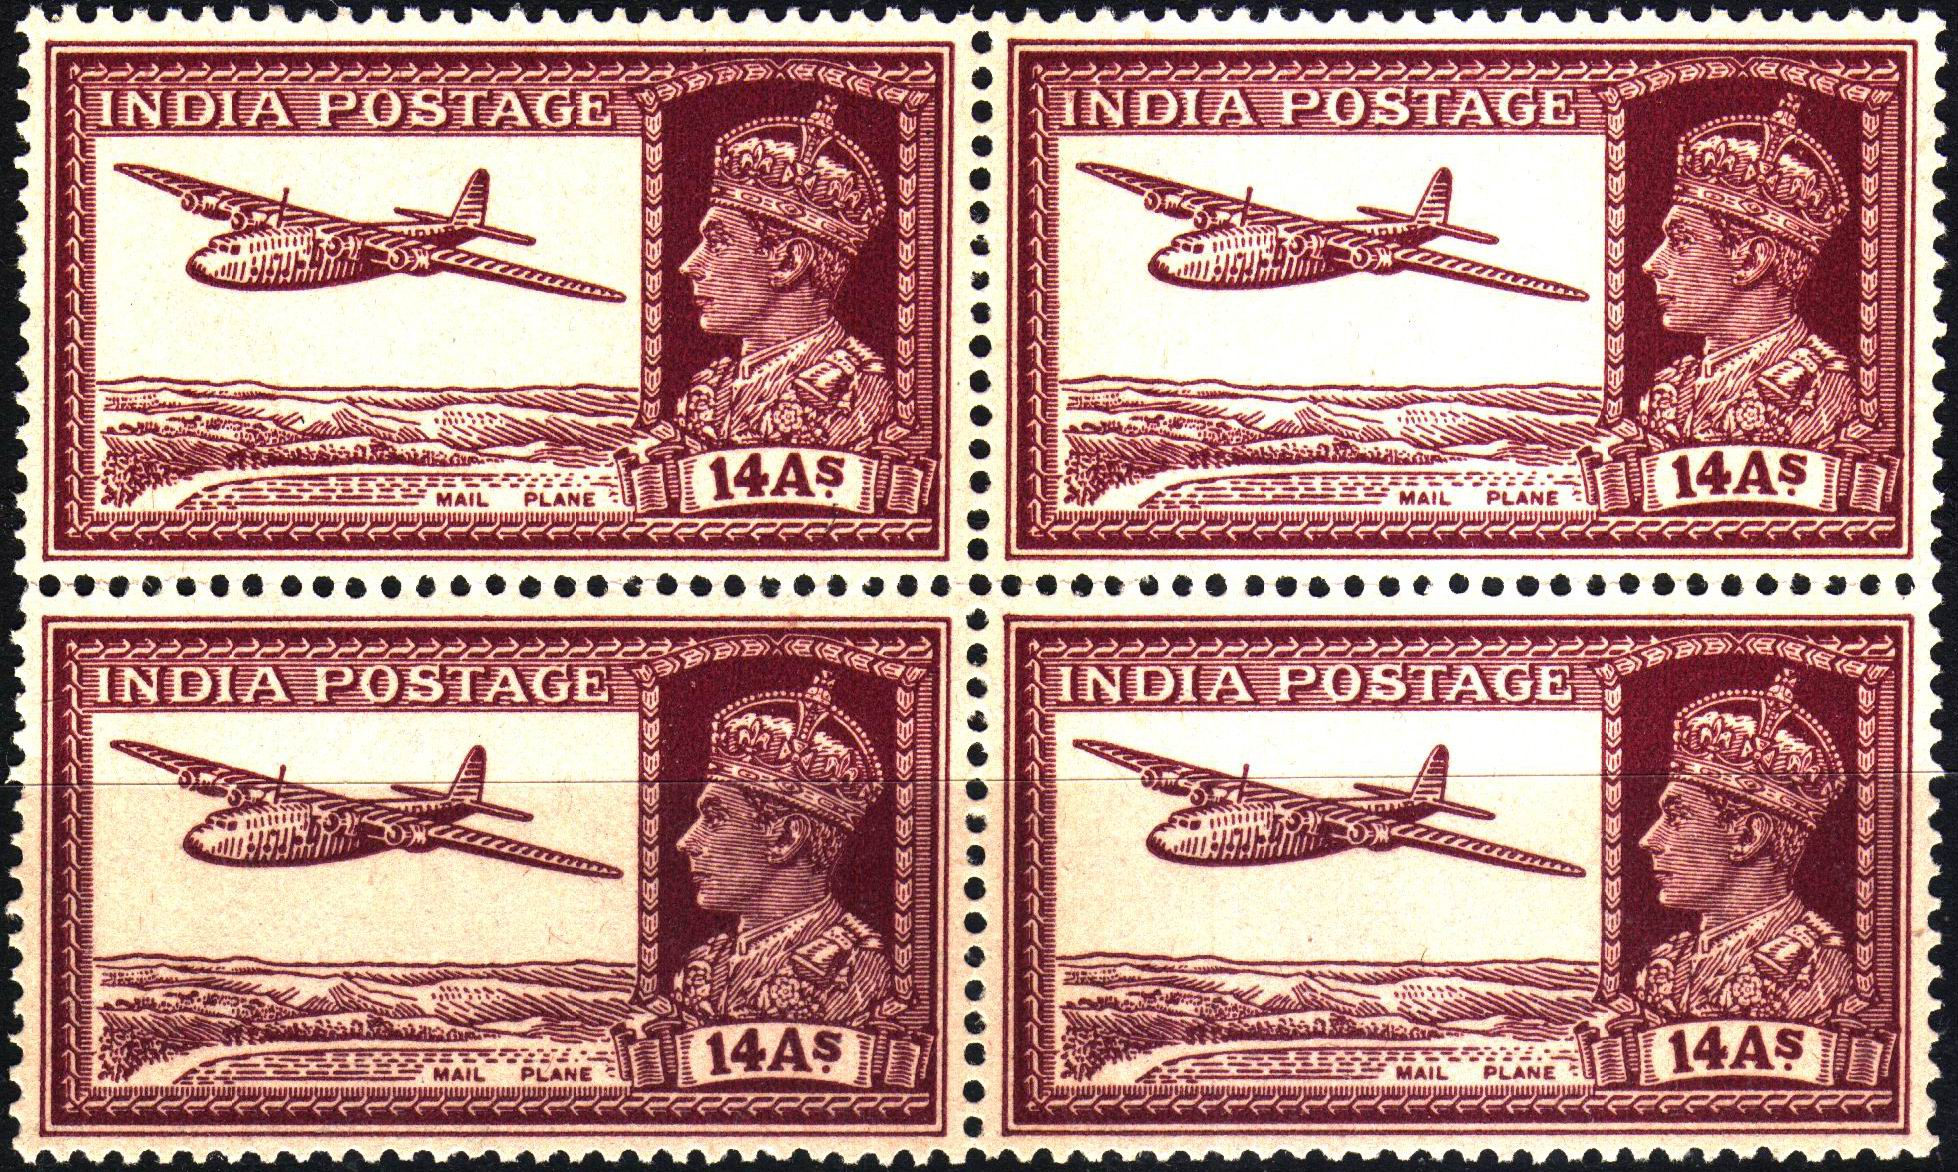 British India 1940 KGVI 14 Anna Stamps MNH